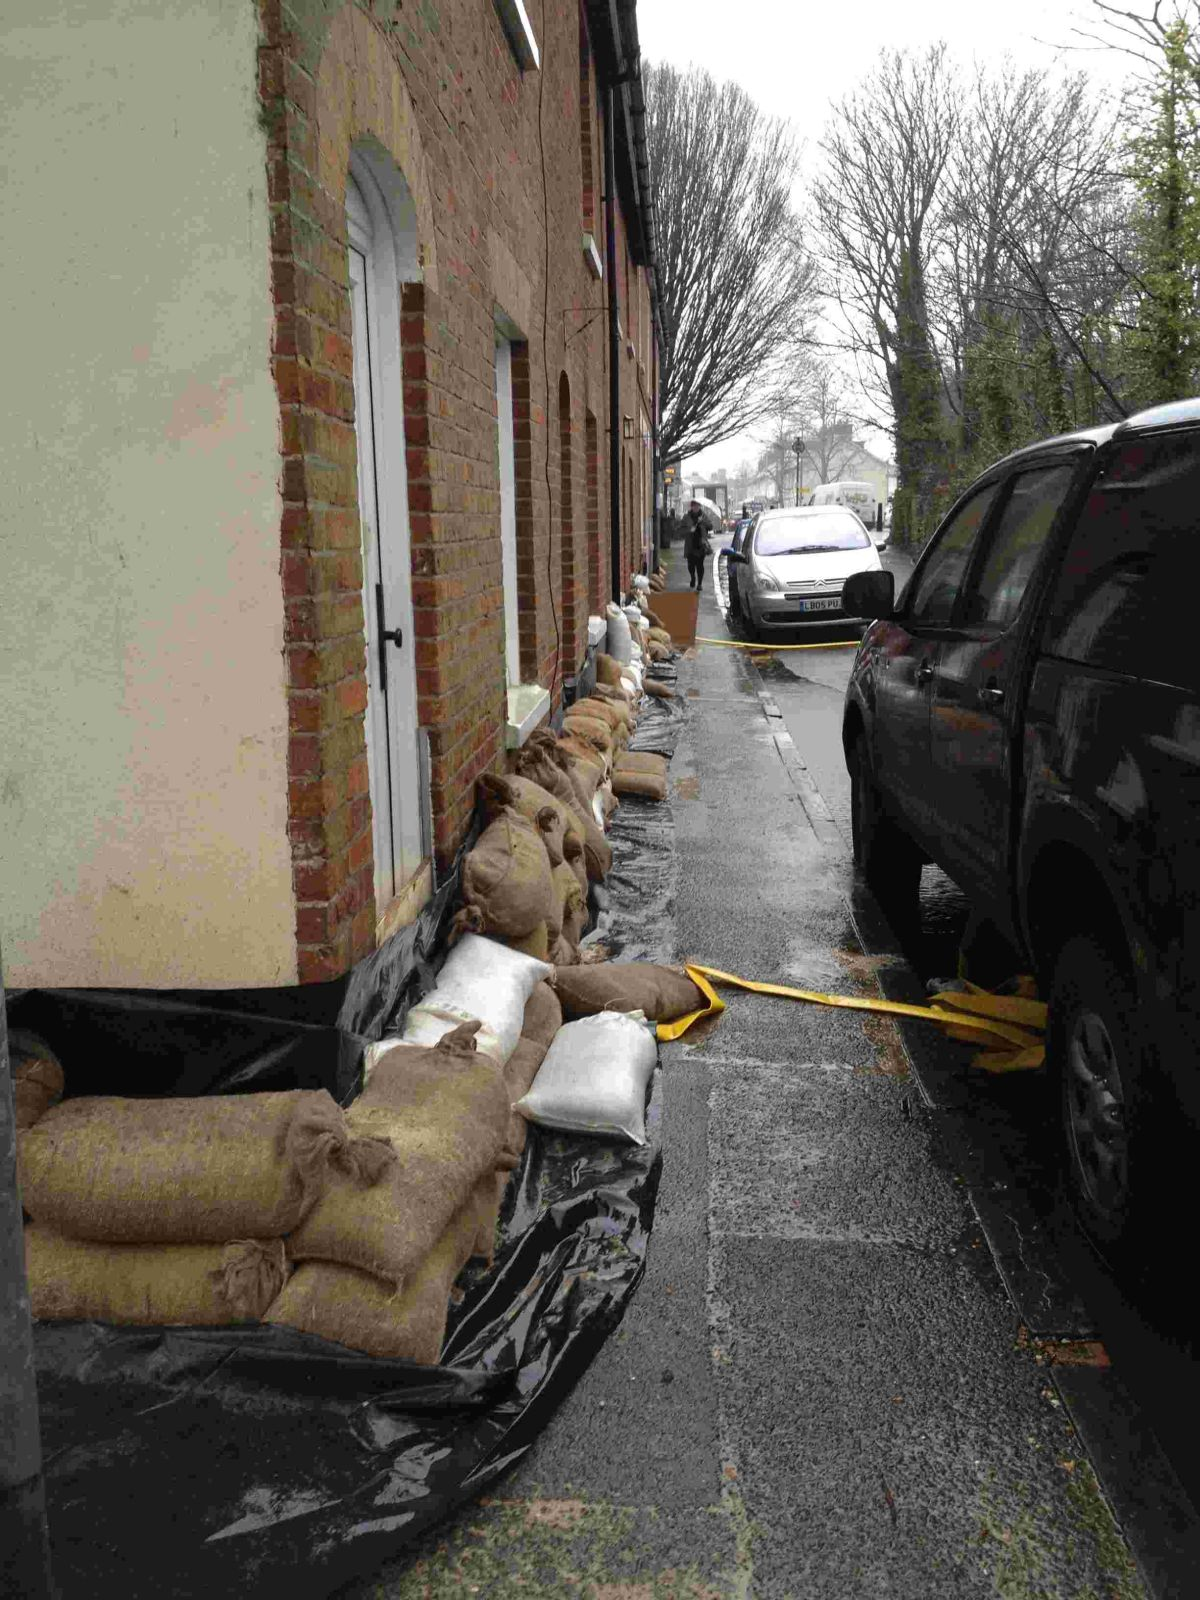 Winchester edging closer to flooding disaster